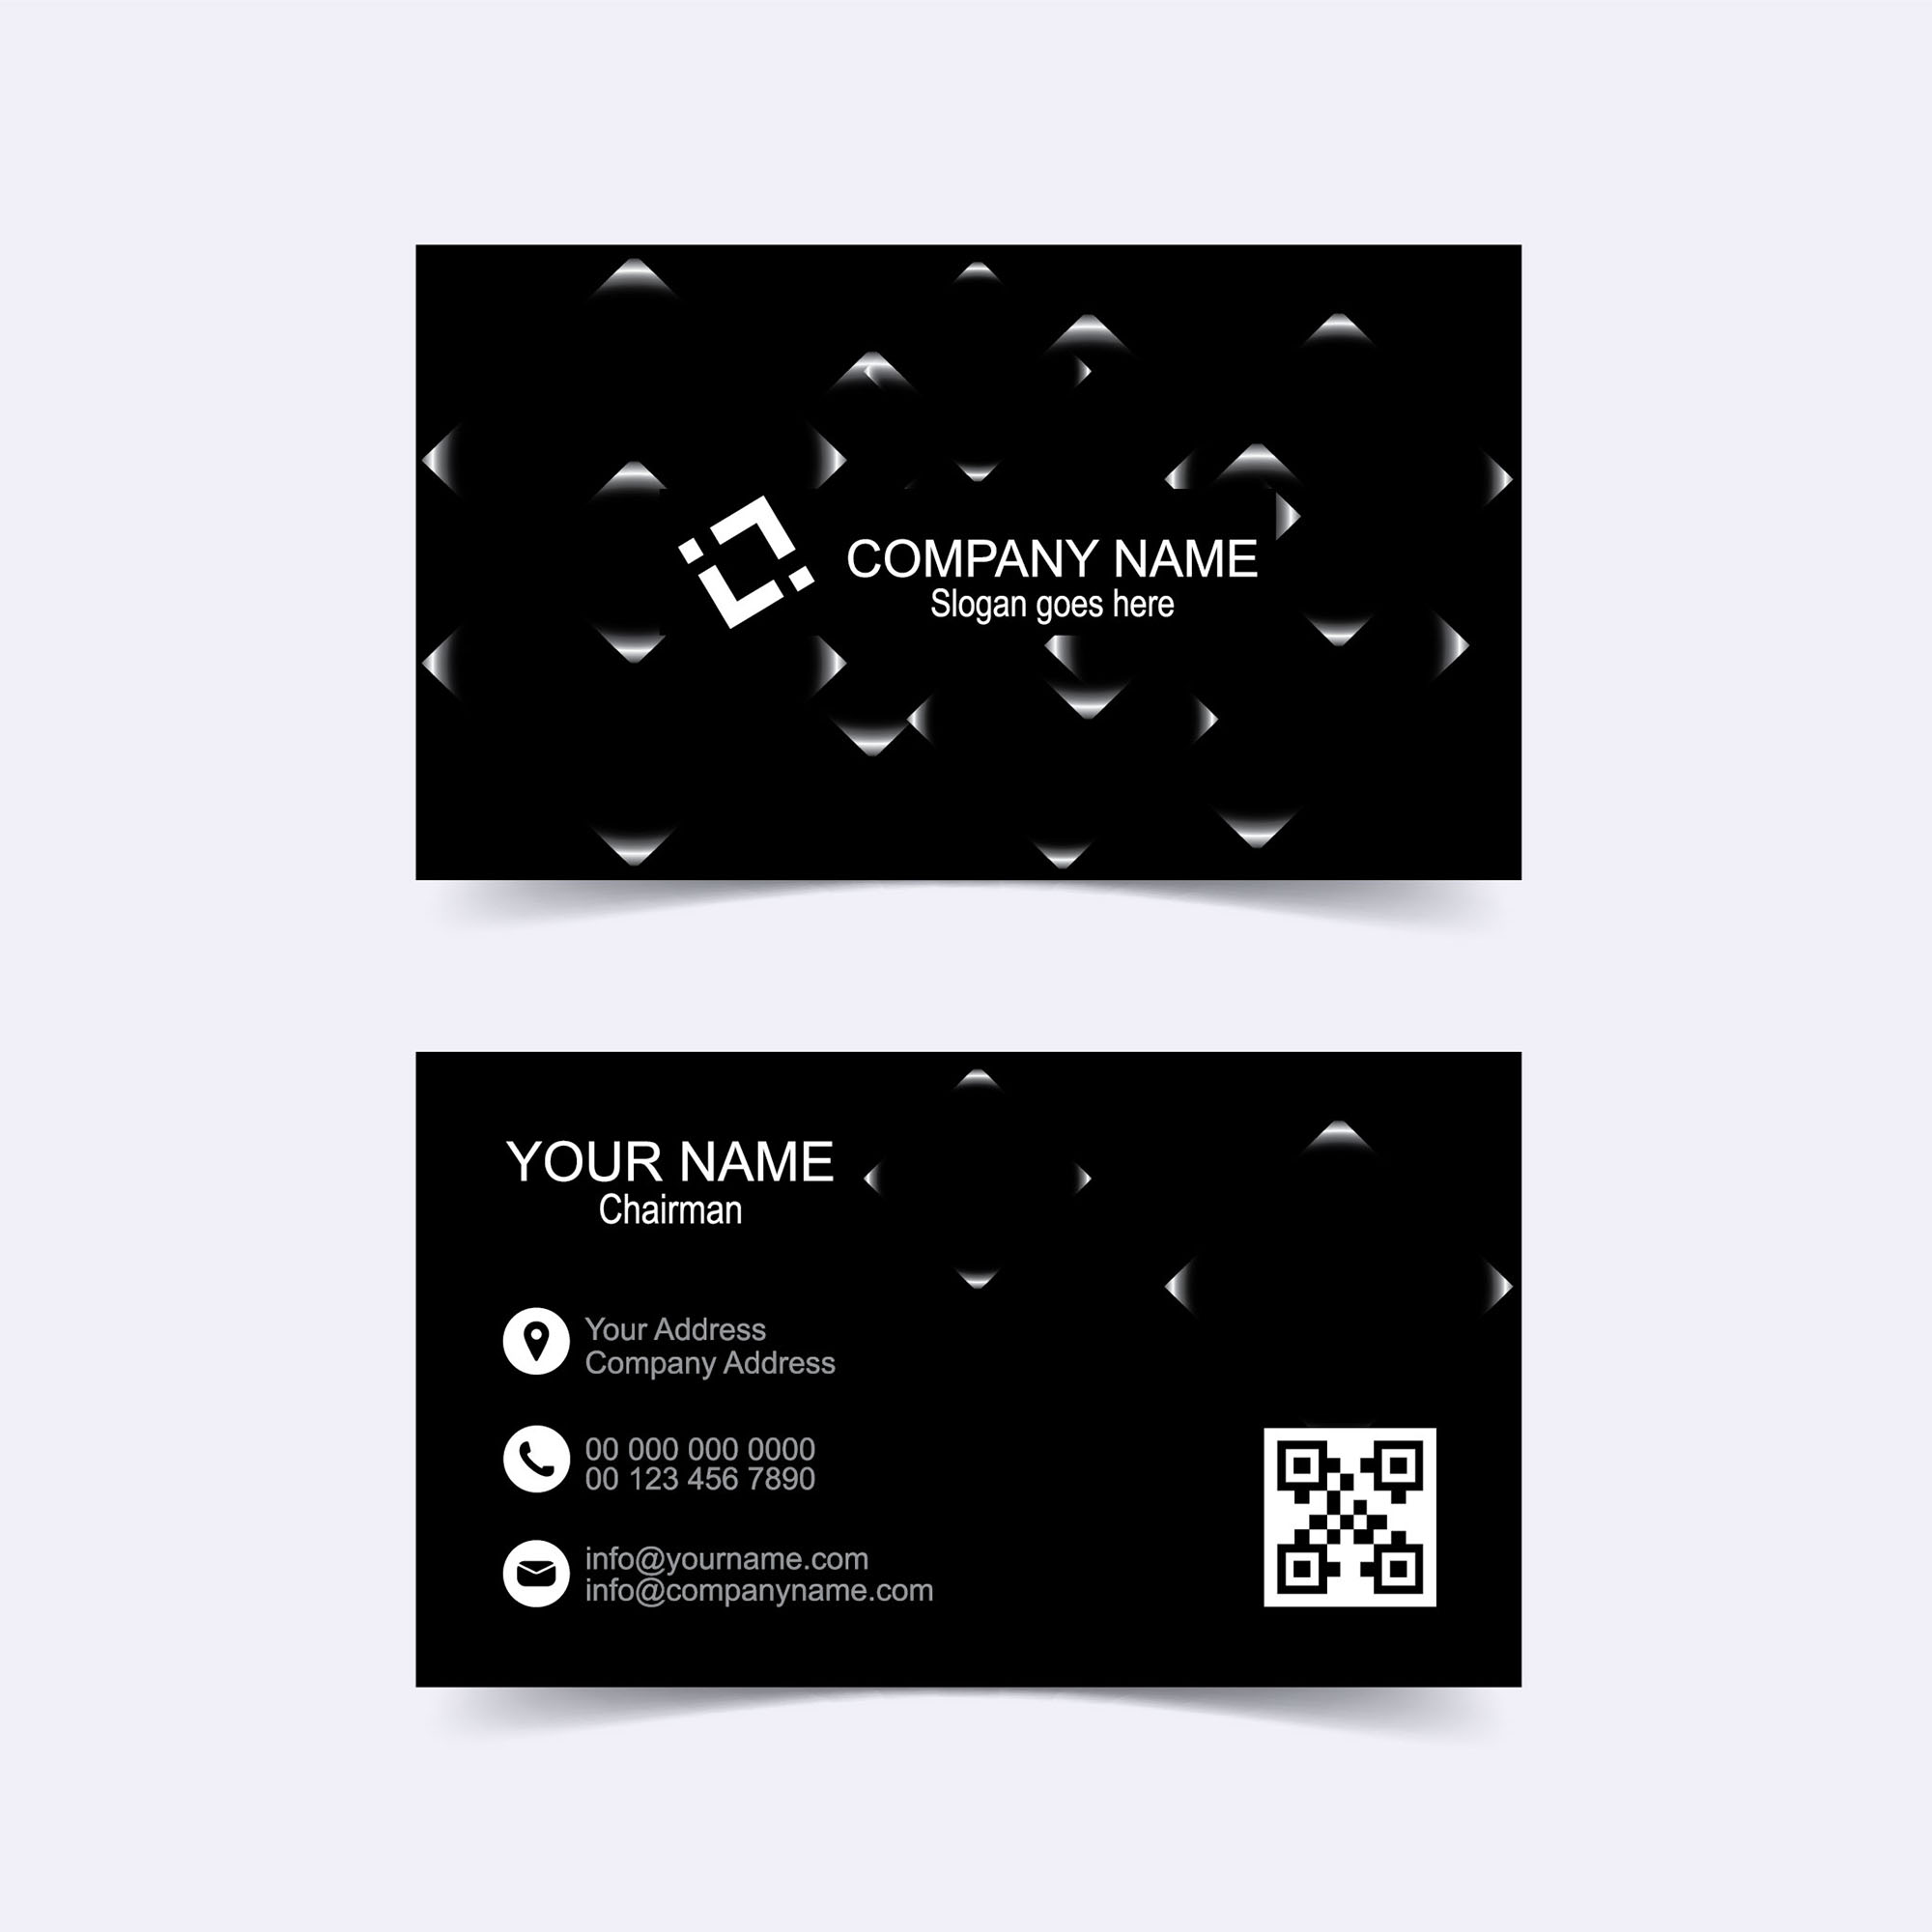 Black business card template free download wisxi business card business cards business card design business card template design templates accmission Gallery